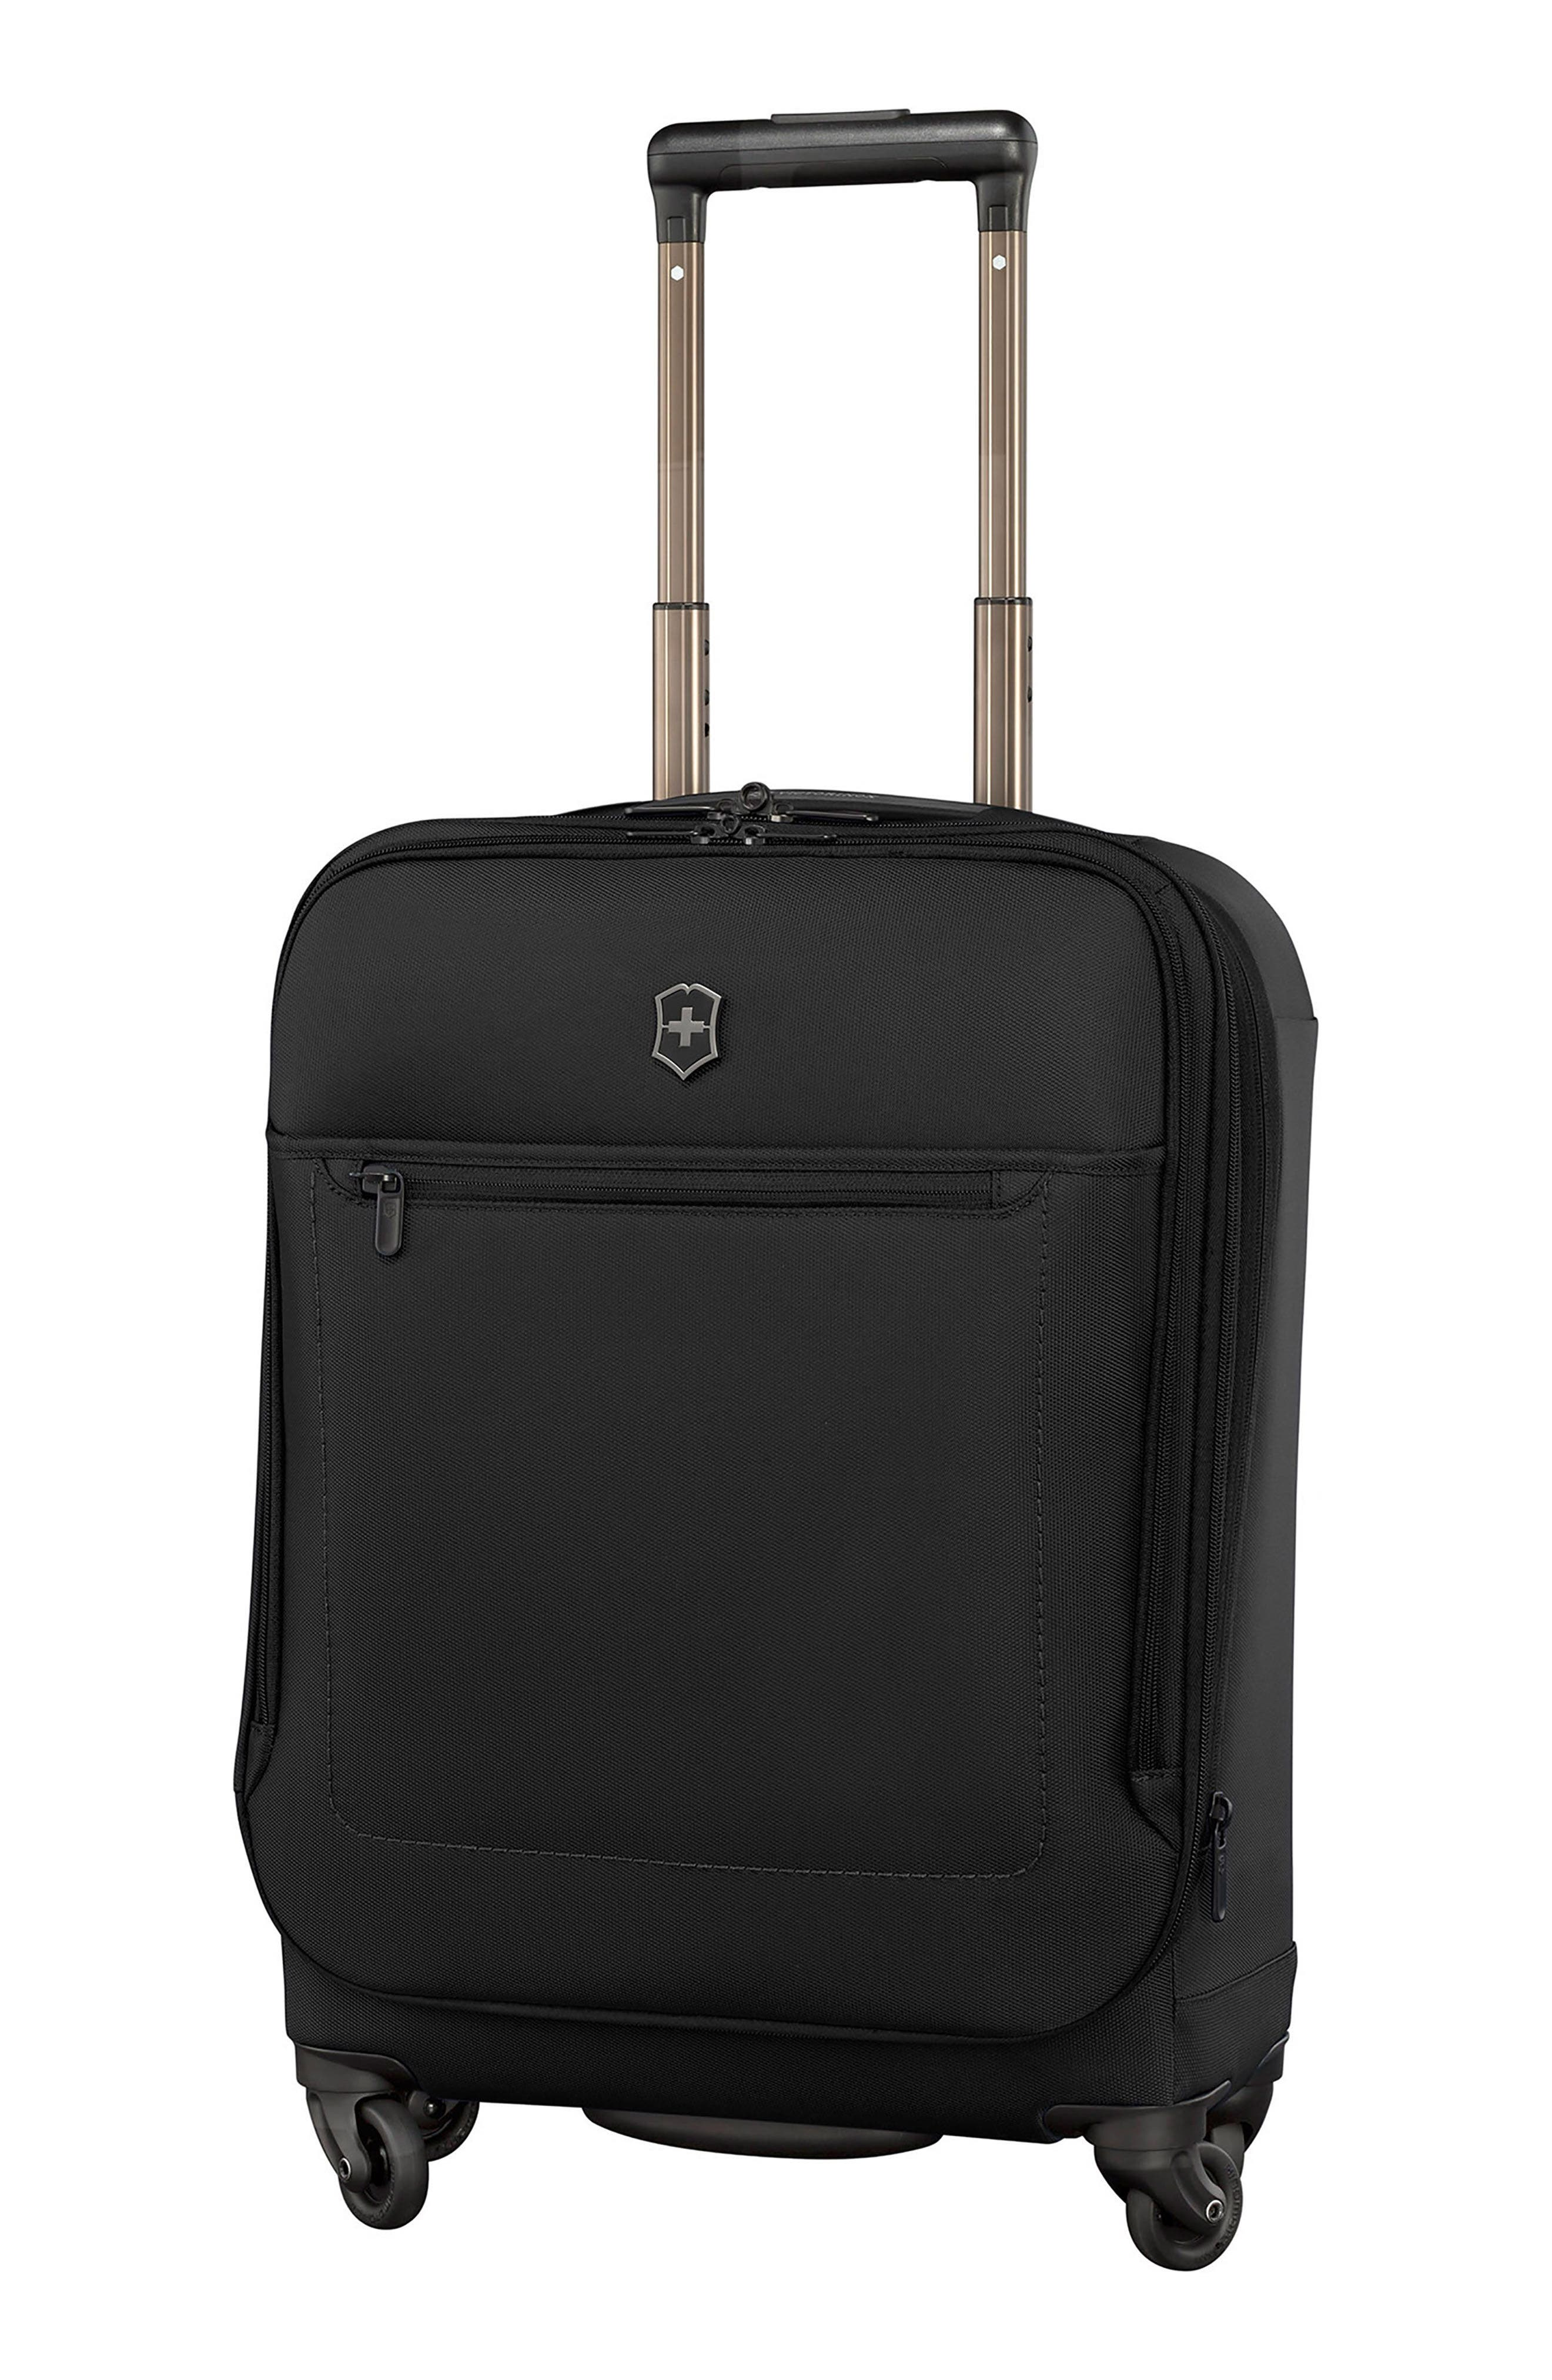 Victorinox Swiss Army® Avolve 3.0 Global 22 Inch Wheeled Carry-On